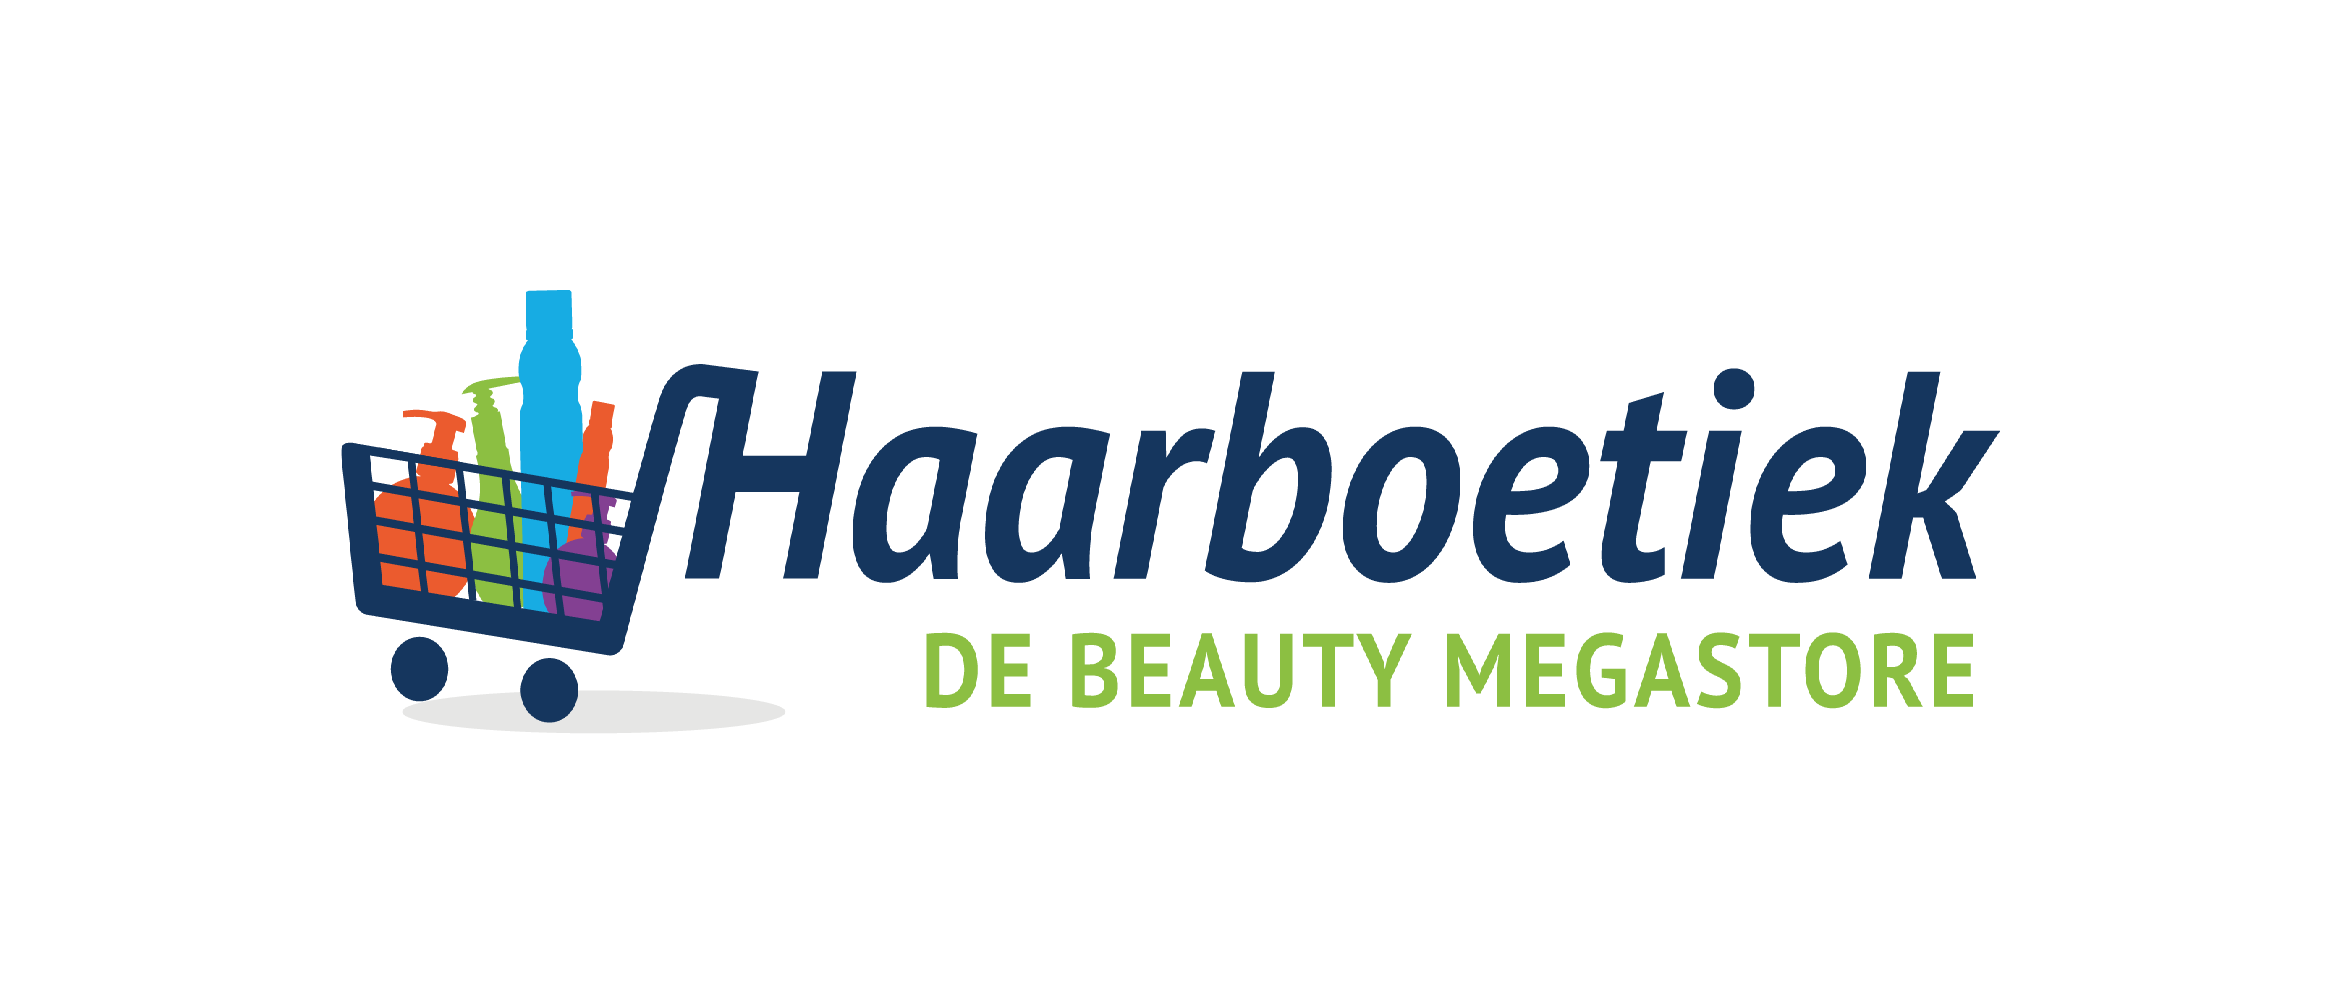 Haarboetiek.be